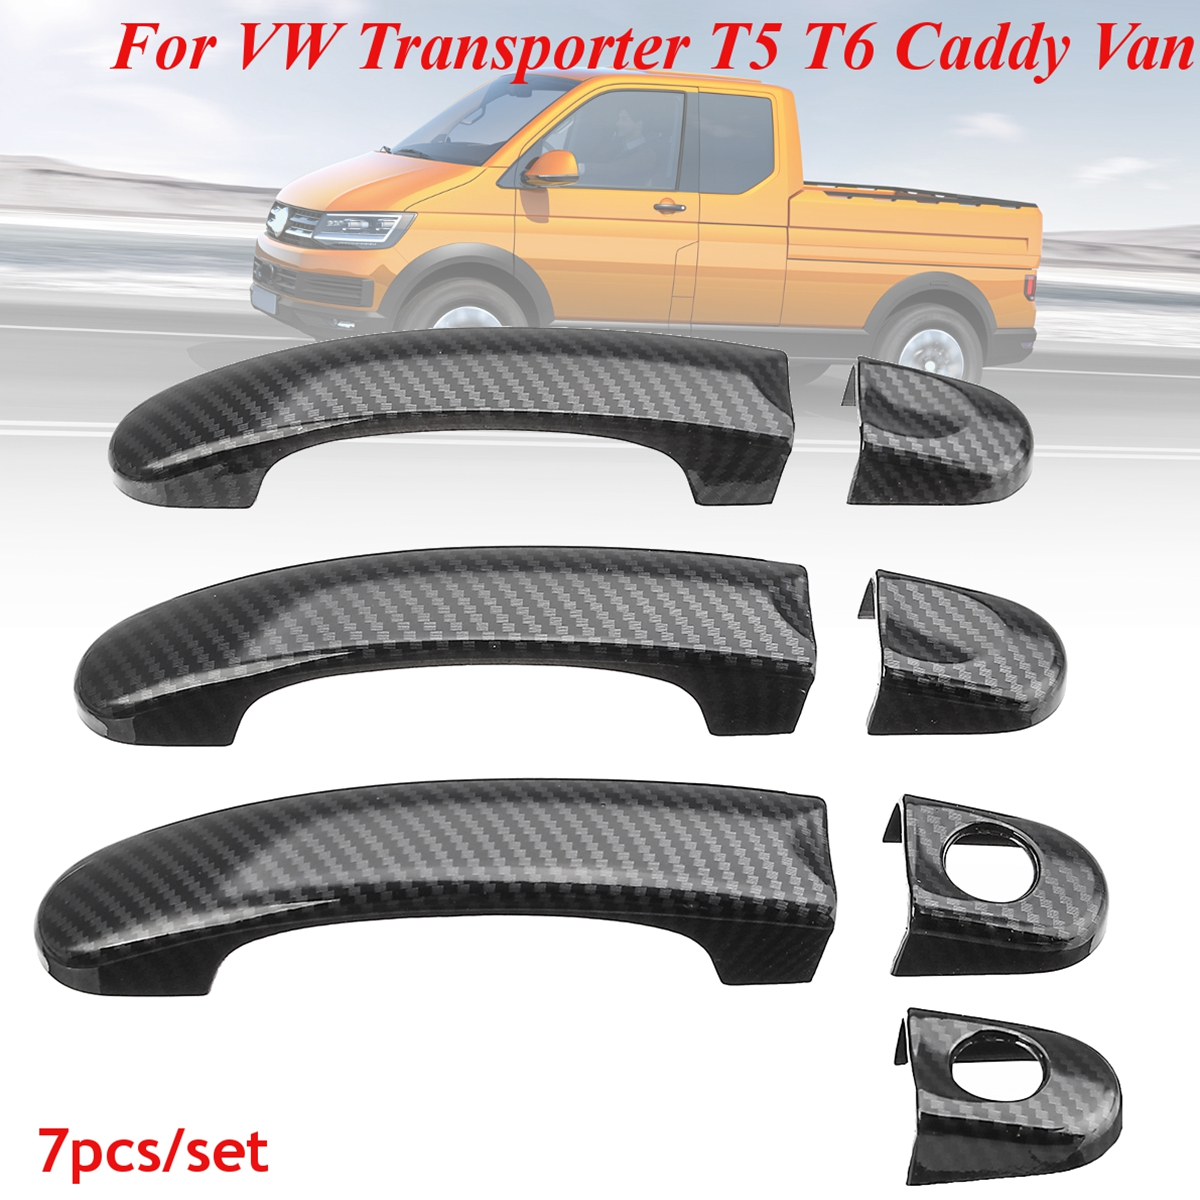 7pcs Set Carbon Fiber Door Handle Covers For VW For VW Transporter T5 T6 Caddy for Vans 2004 05 06 07 08 09 10 11 12